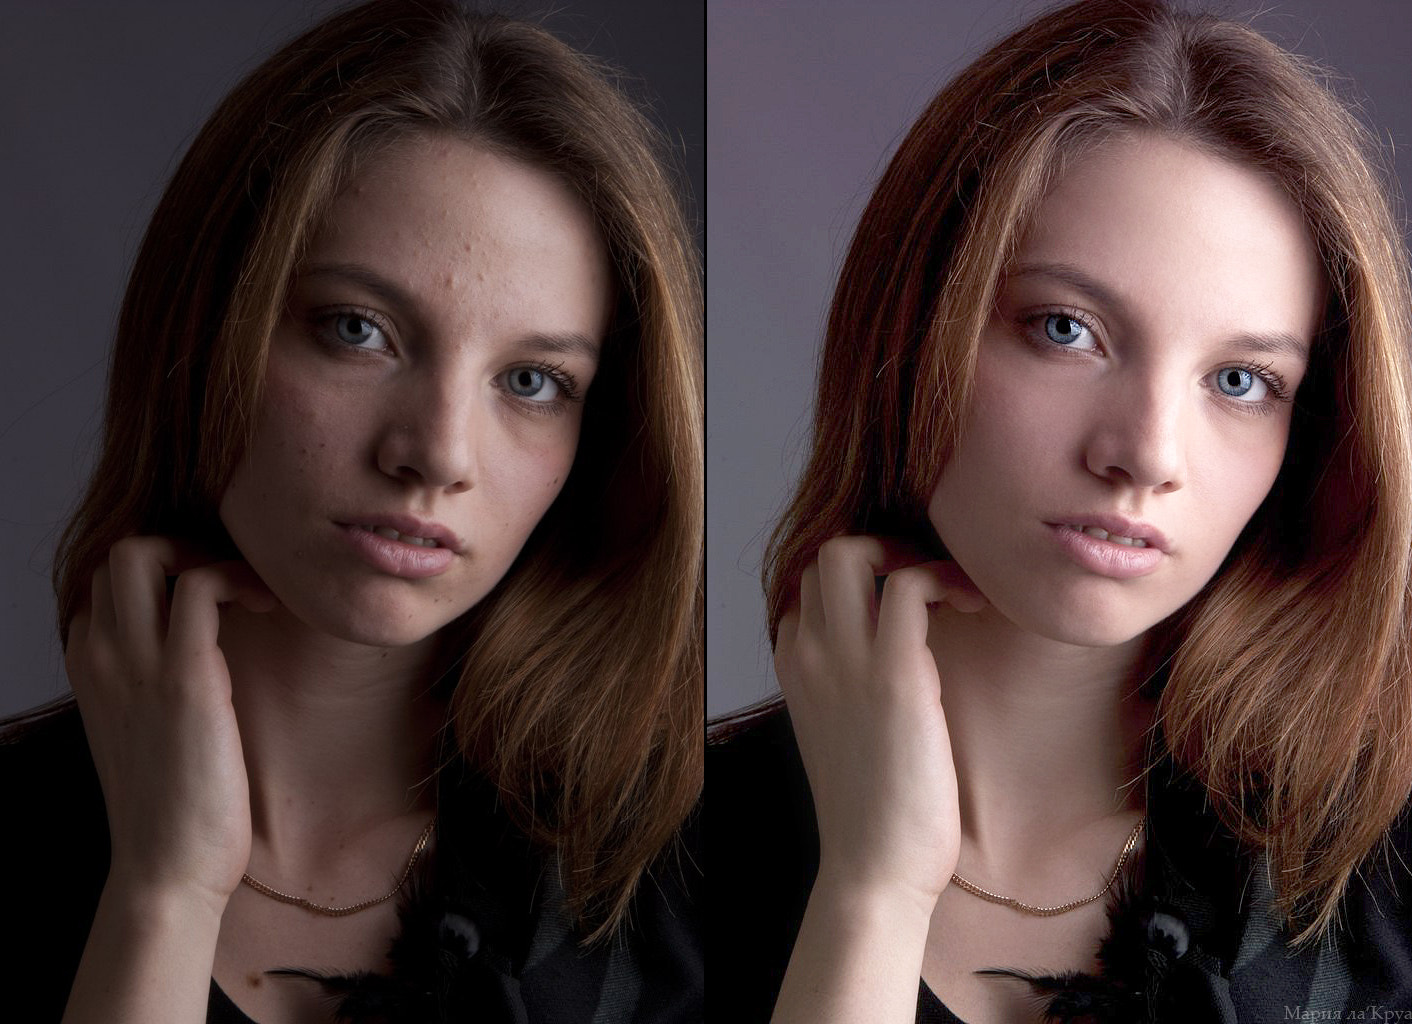 Photograph before/after by Maria Lacroix on 500px